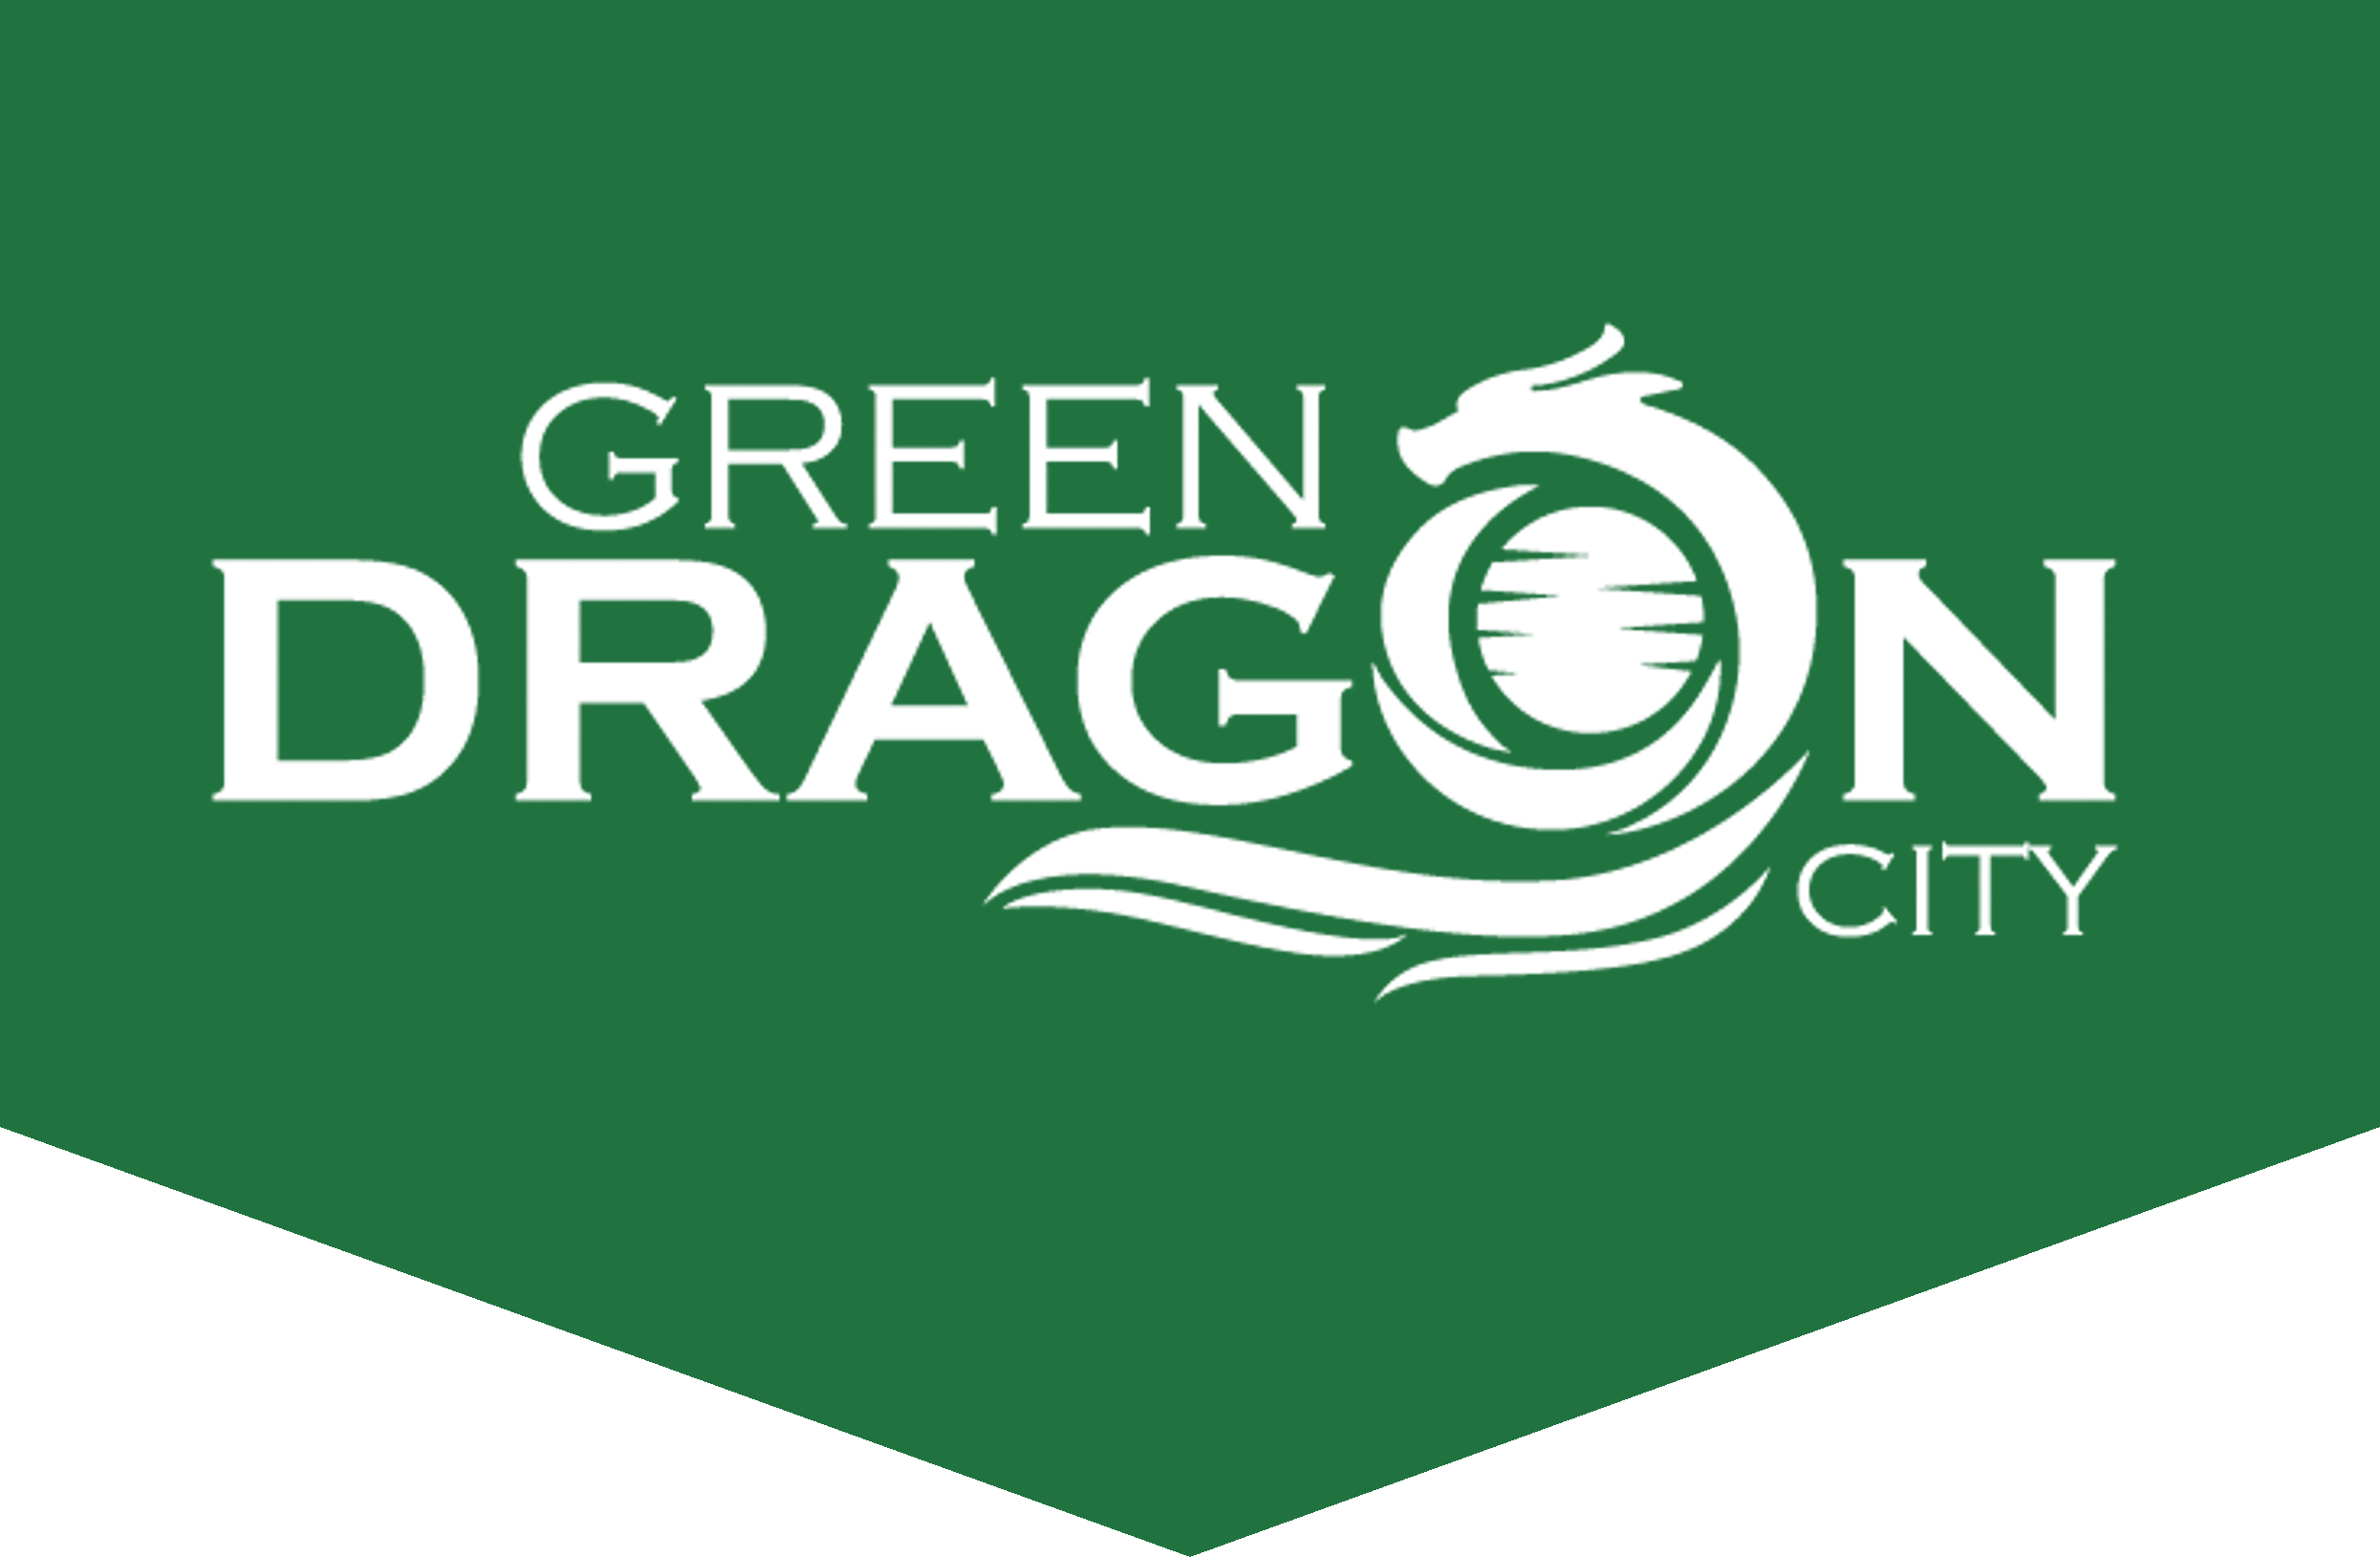 Green Dragon City